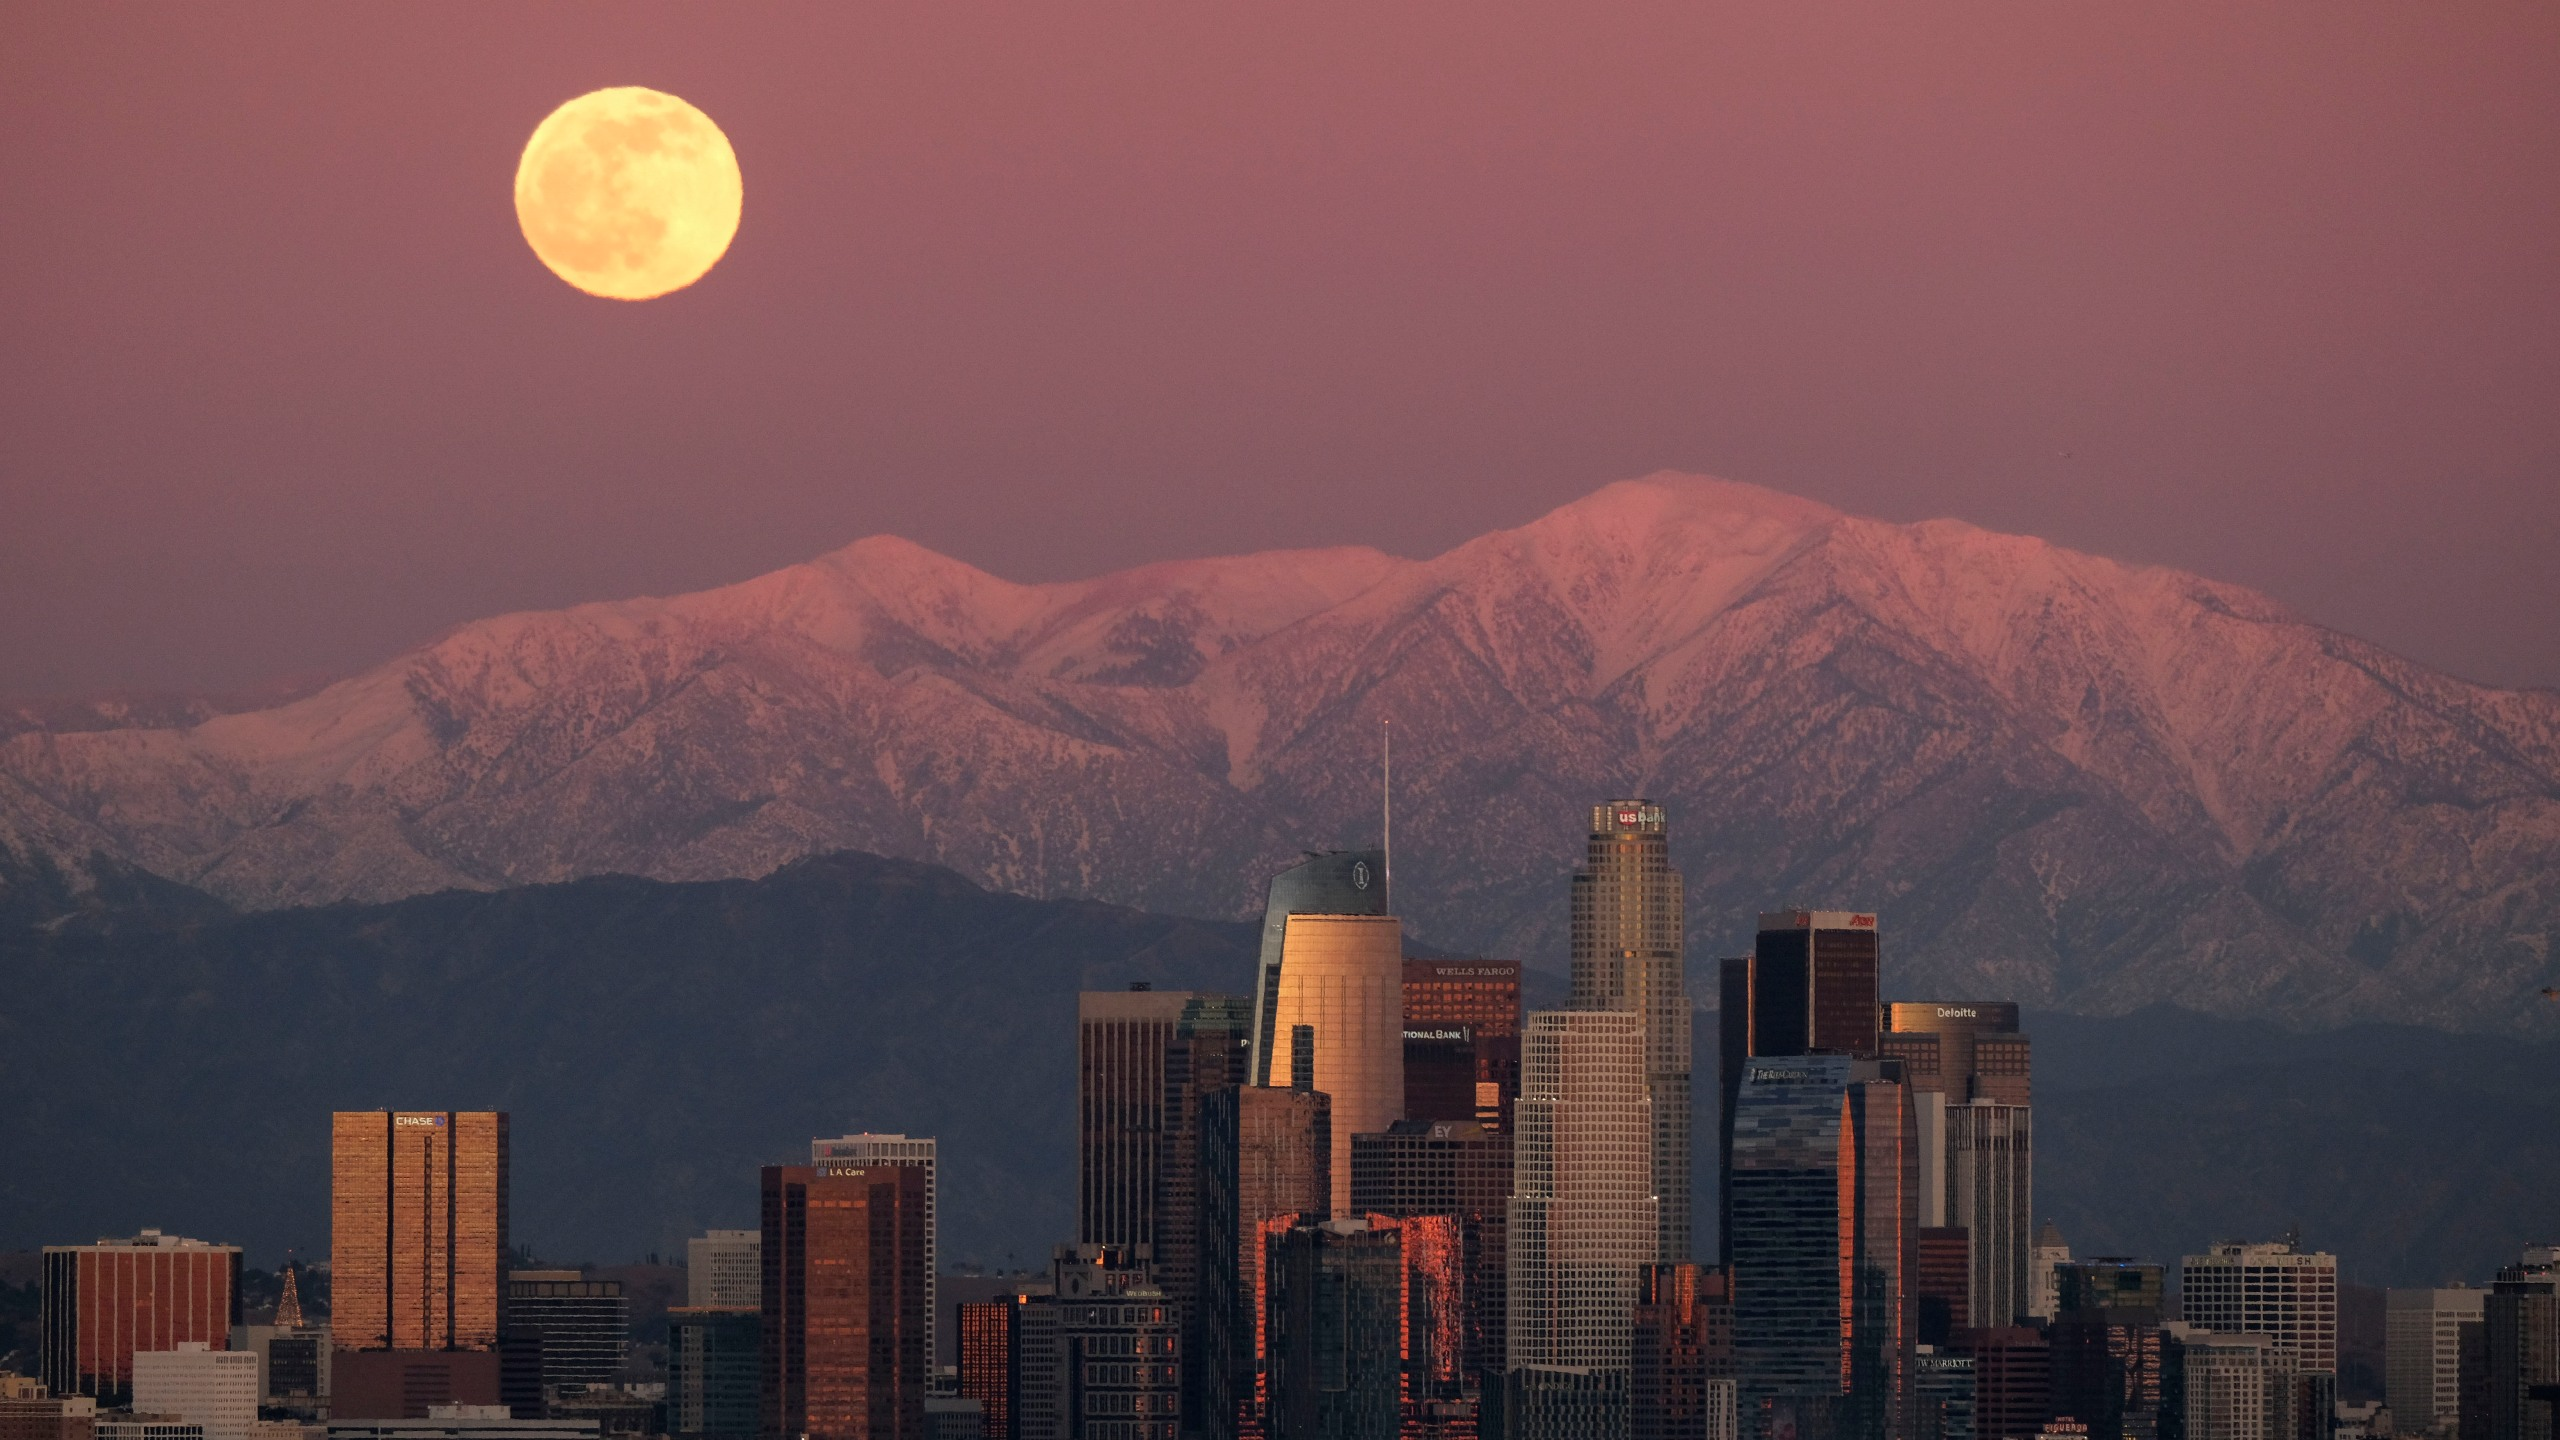 The moon rises over snow-covered mountains, behind the downtown Los Angeles skyline as seen from Kenneth Hahn State Recreation Area Tuesday, Dec. 29, 2020, in Los Angeles. (AP Photo/Ringo H.W. Chiu)